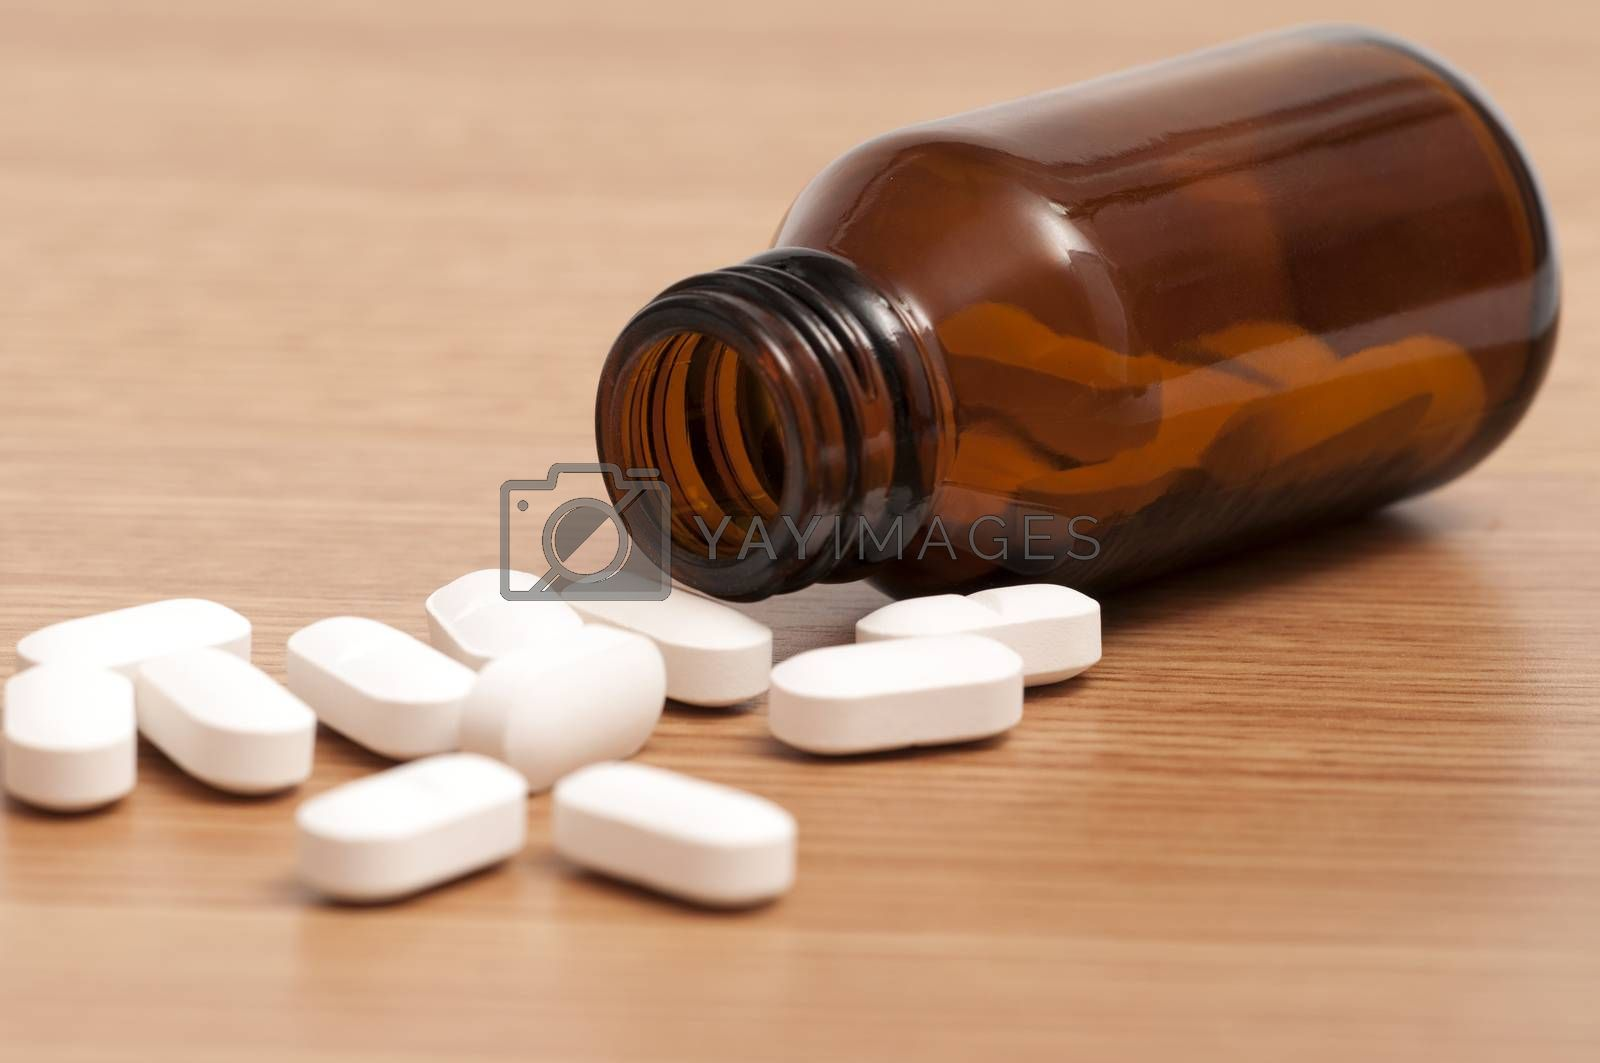 Royalty free image of Capsules and Pills in a bottle by rodrigobellizzi